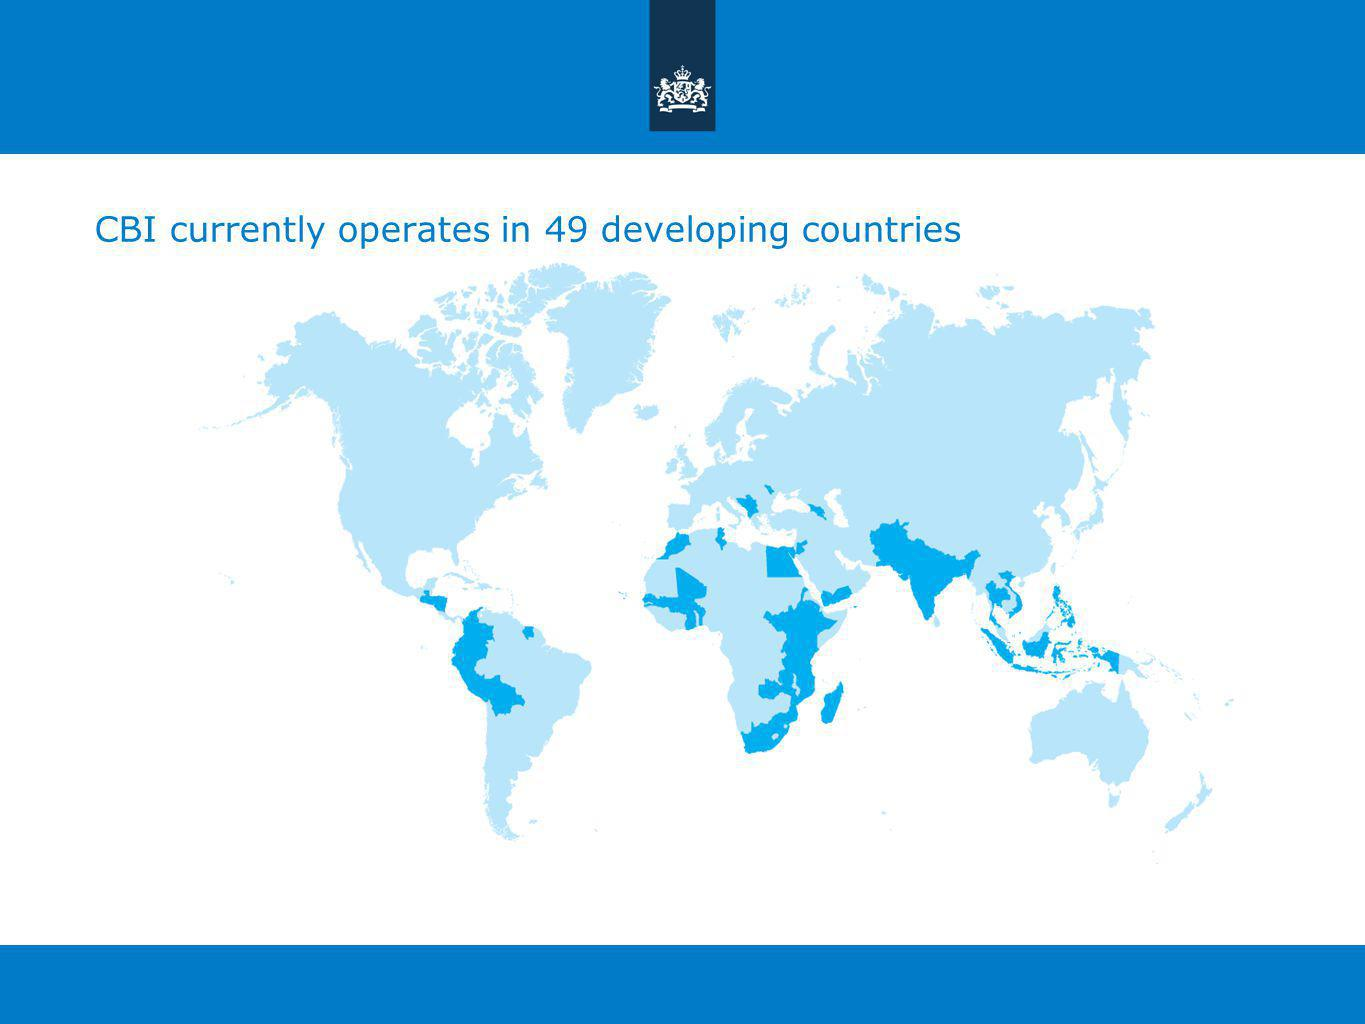 CBI currently operates in 49 developing countries